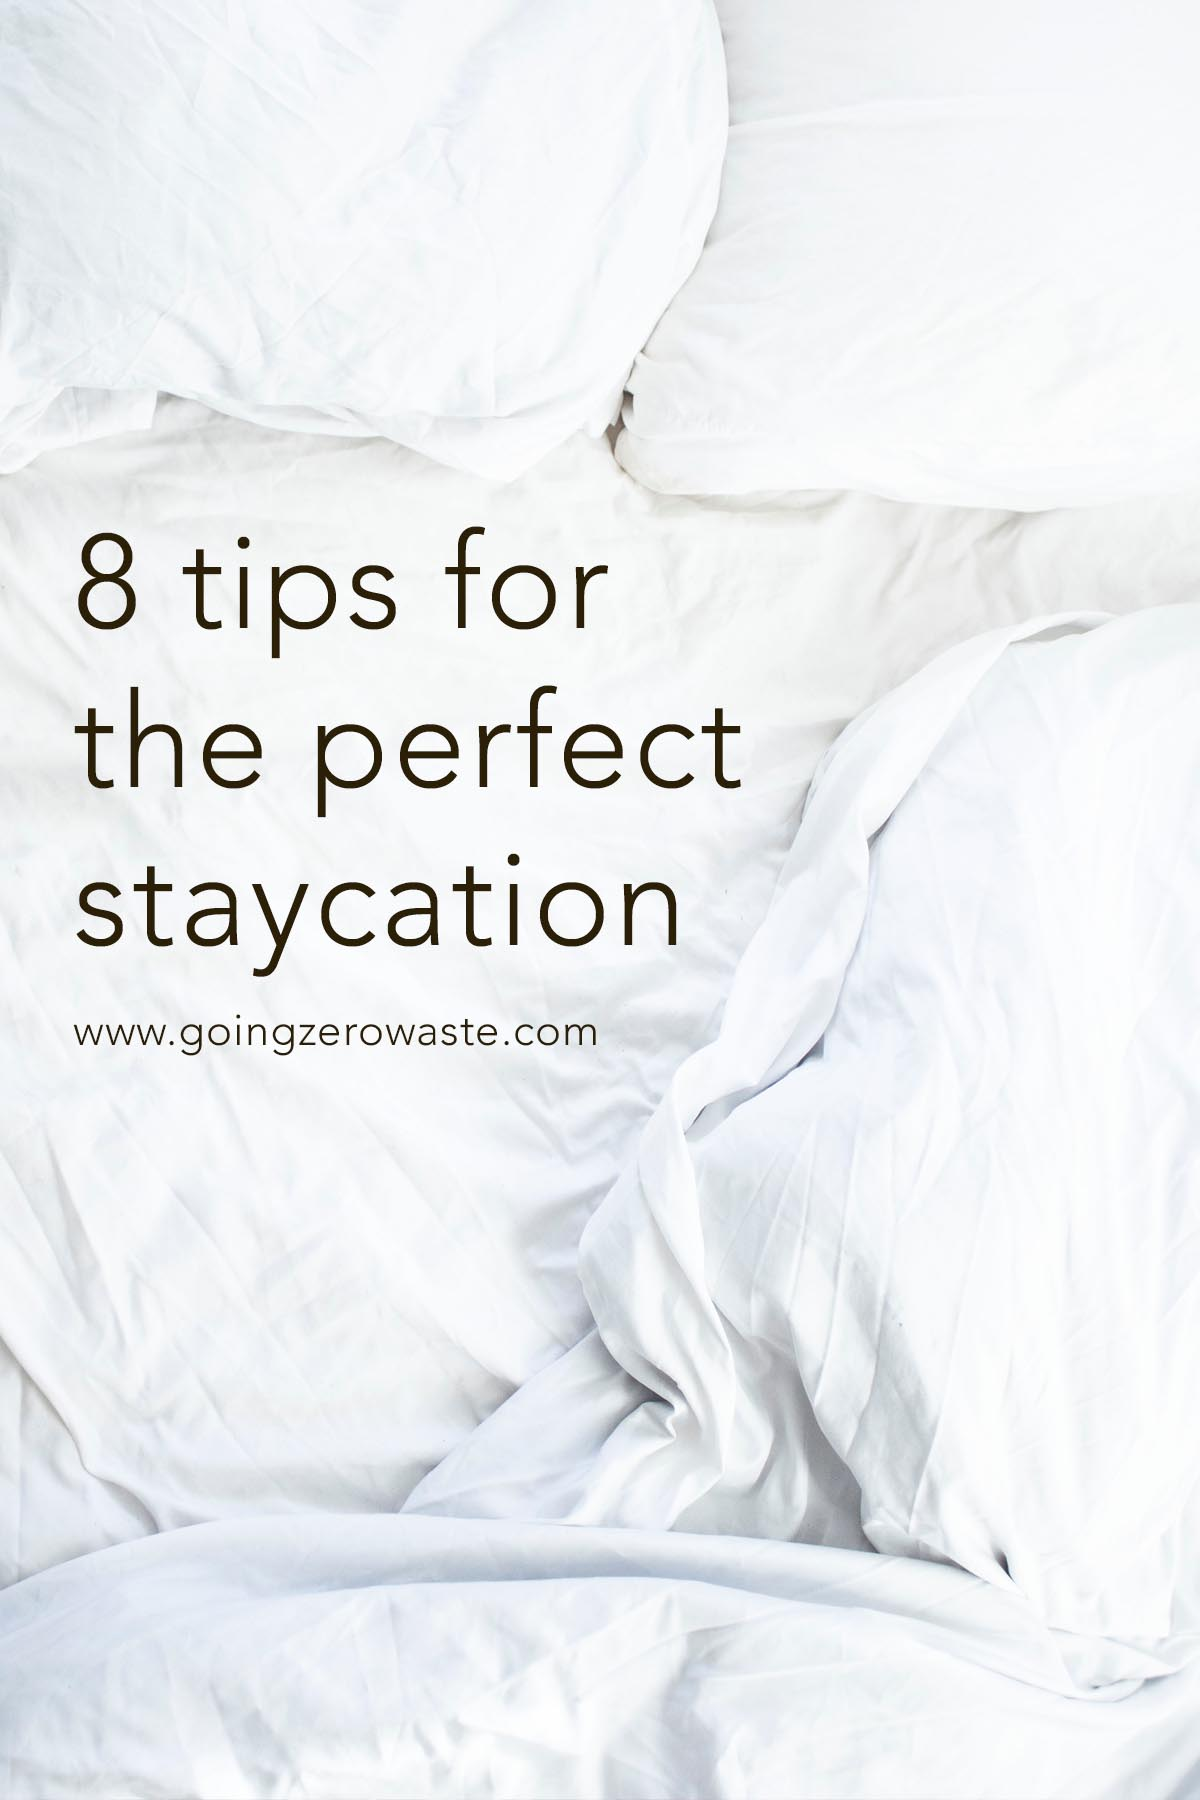 8 tips for the perfect staycation from www.goingzerowaste.com #zerowaste #ecofriendly #sustainable #travel #staycation #exploreyourtown #travelideas